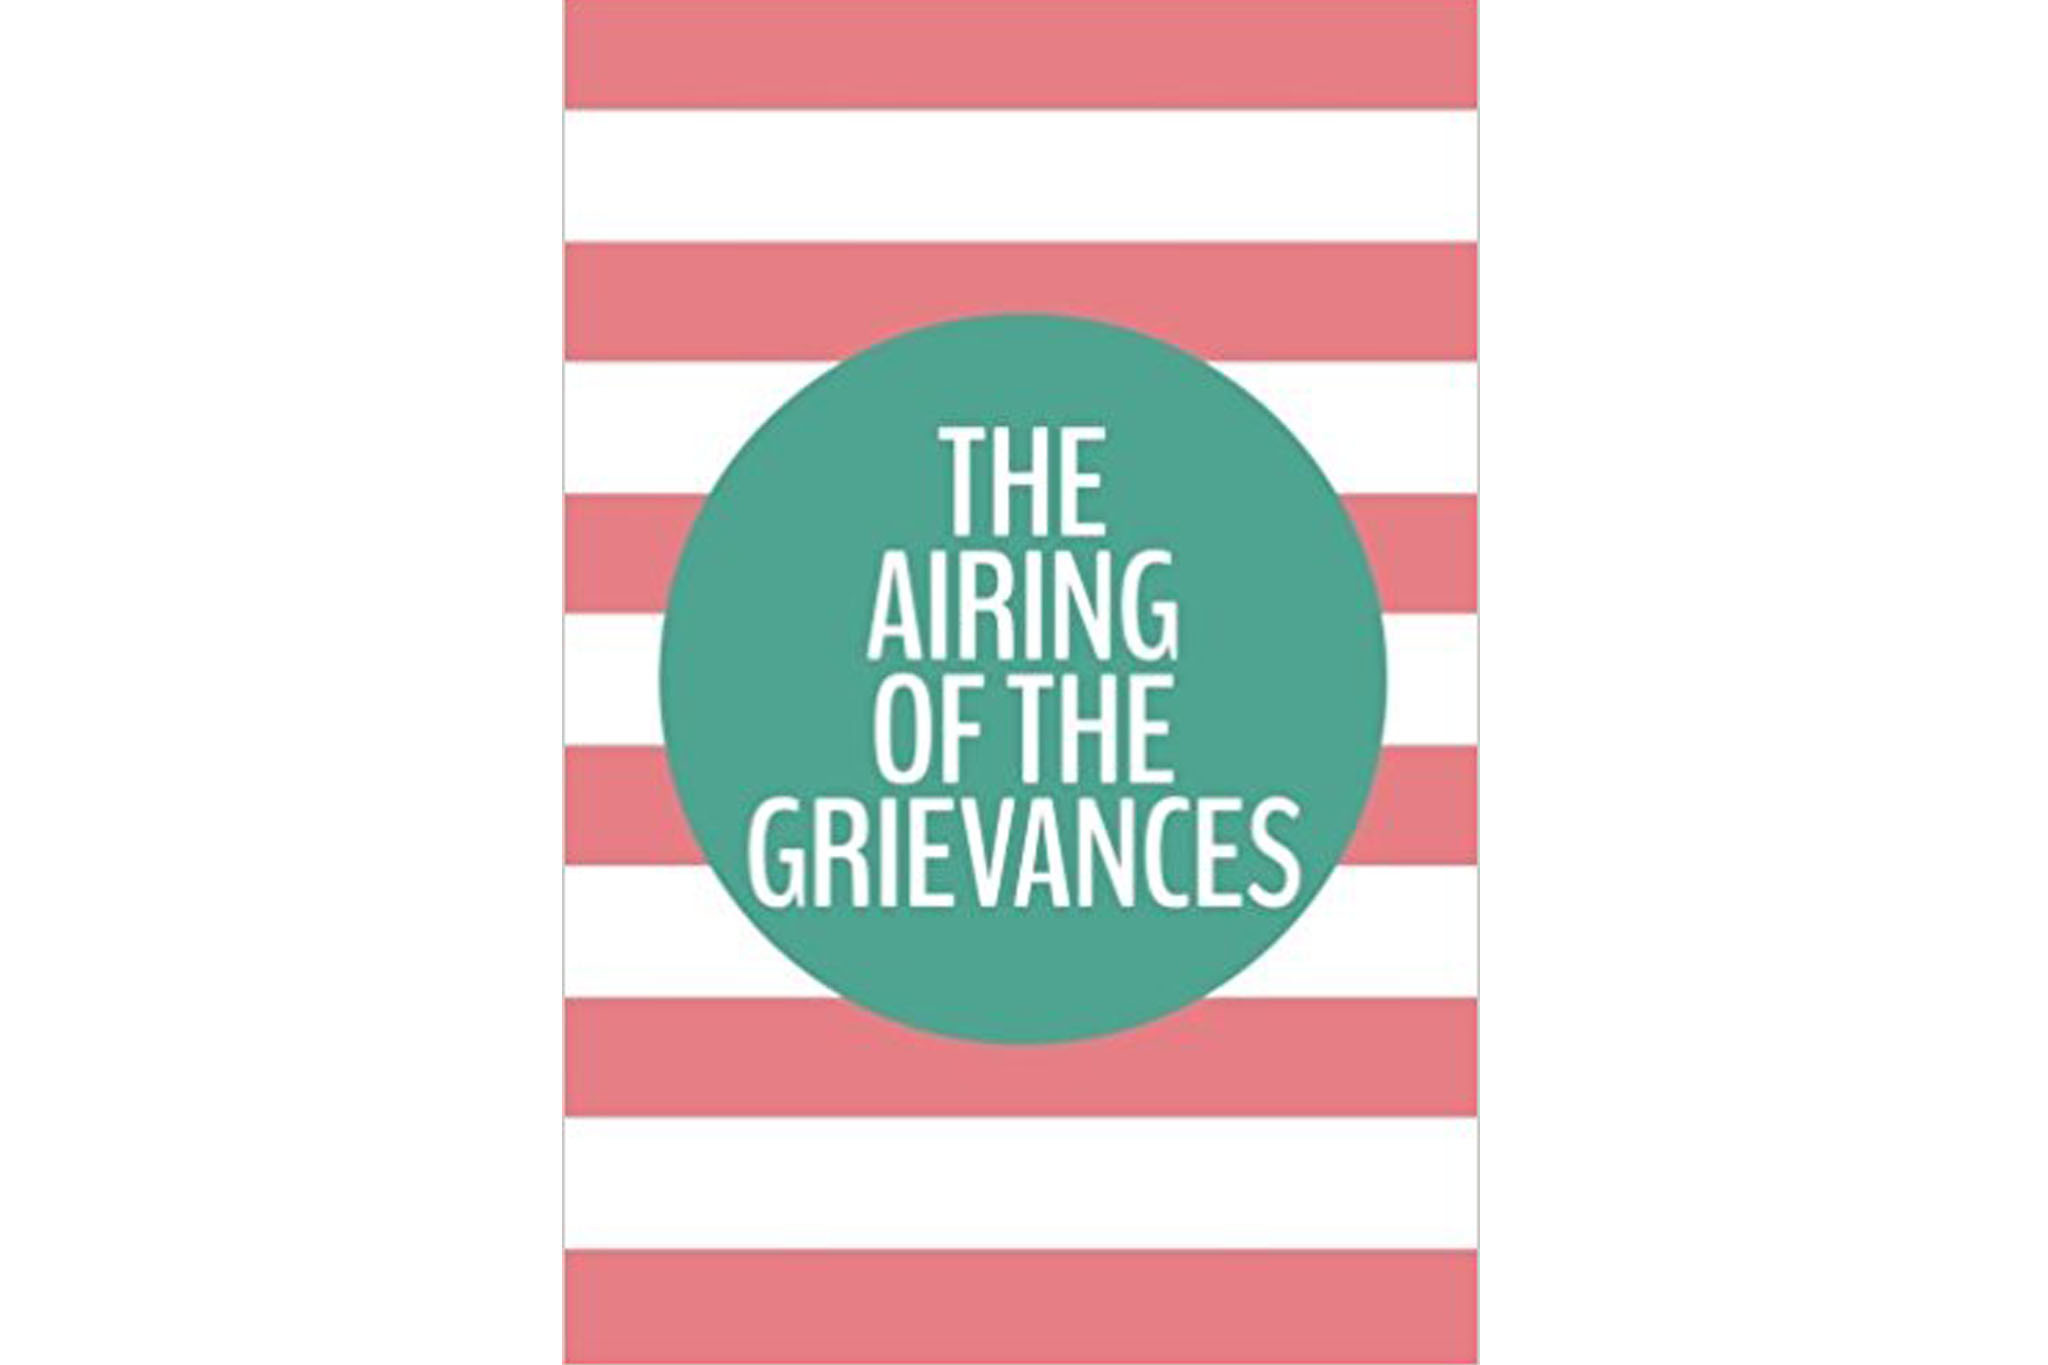 The Airing of Grievances Journal